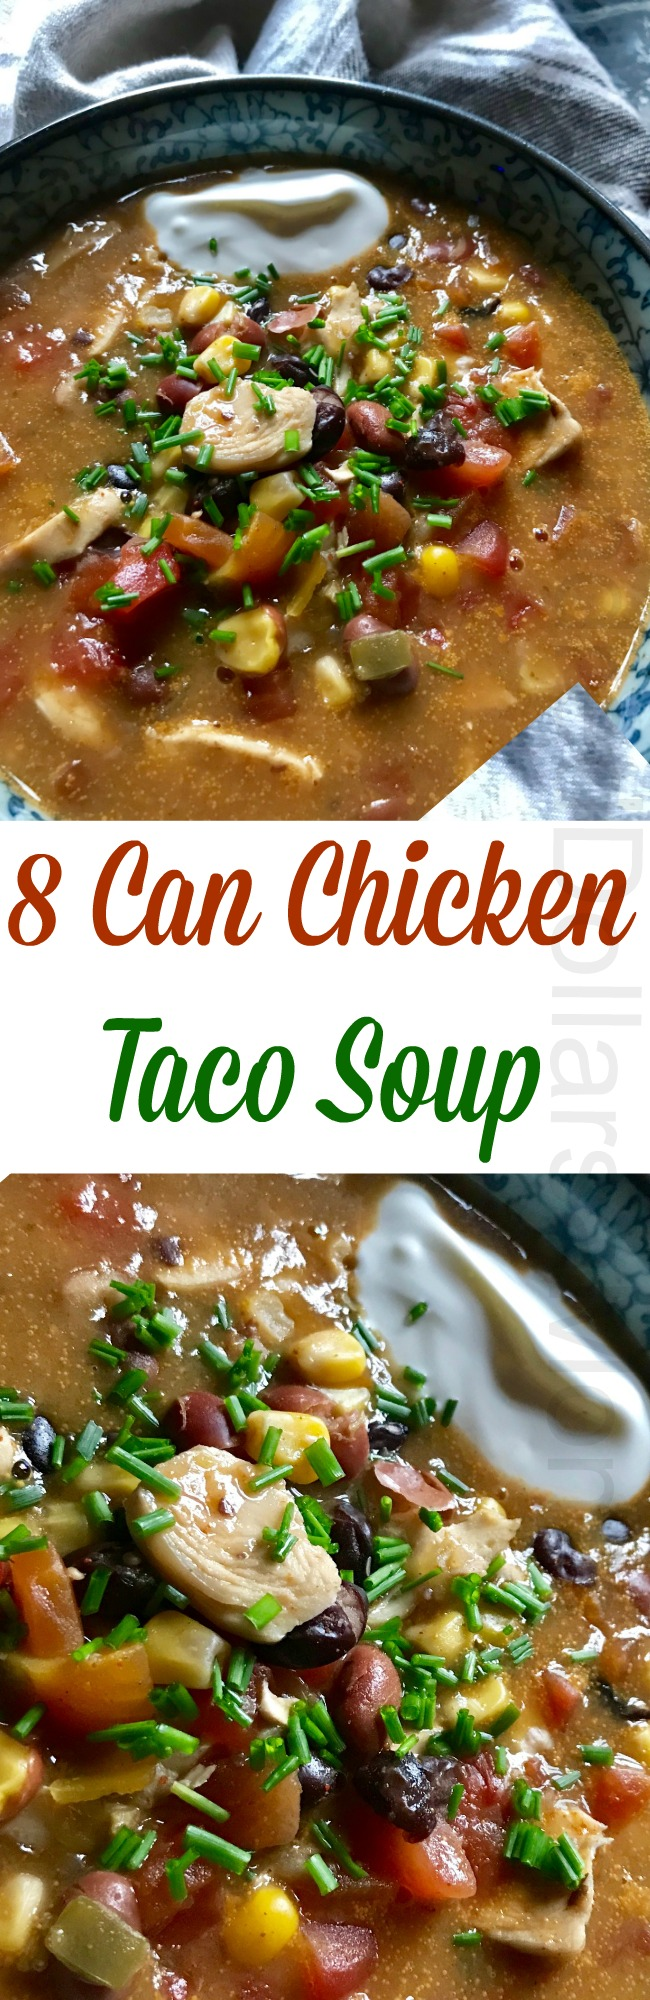 8 Can Chicken Taco Soup – Dinner in Less than 15 Minutes!